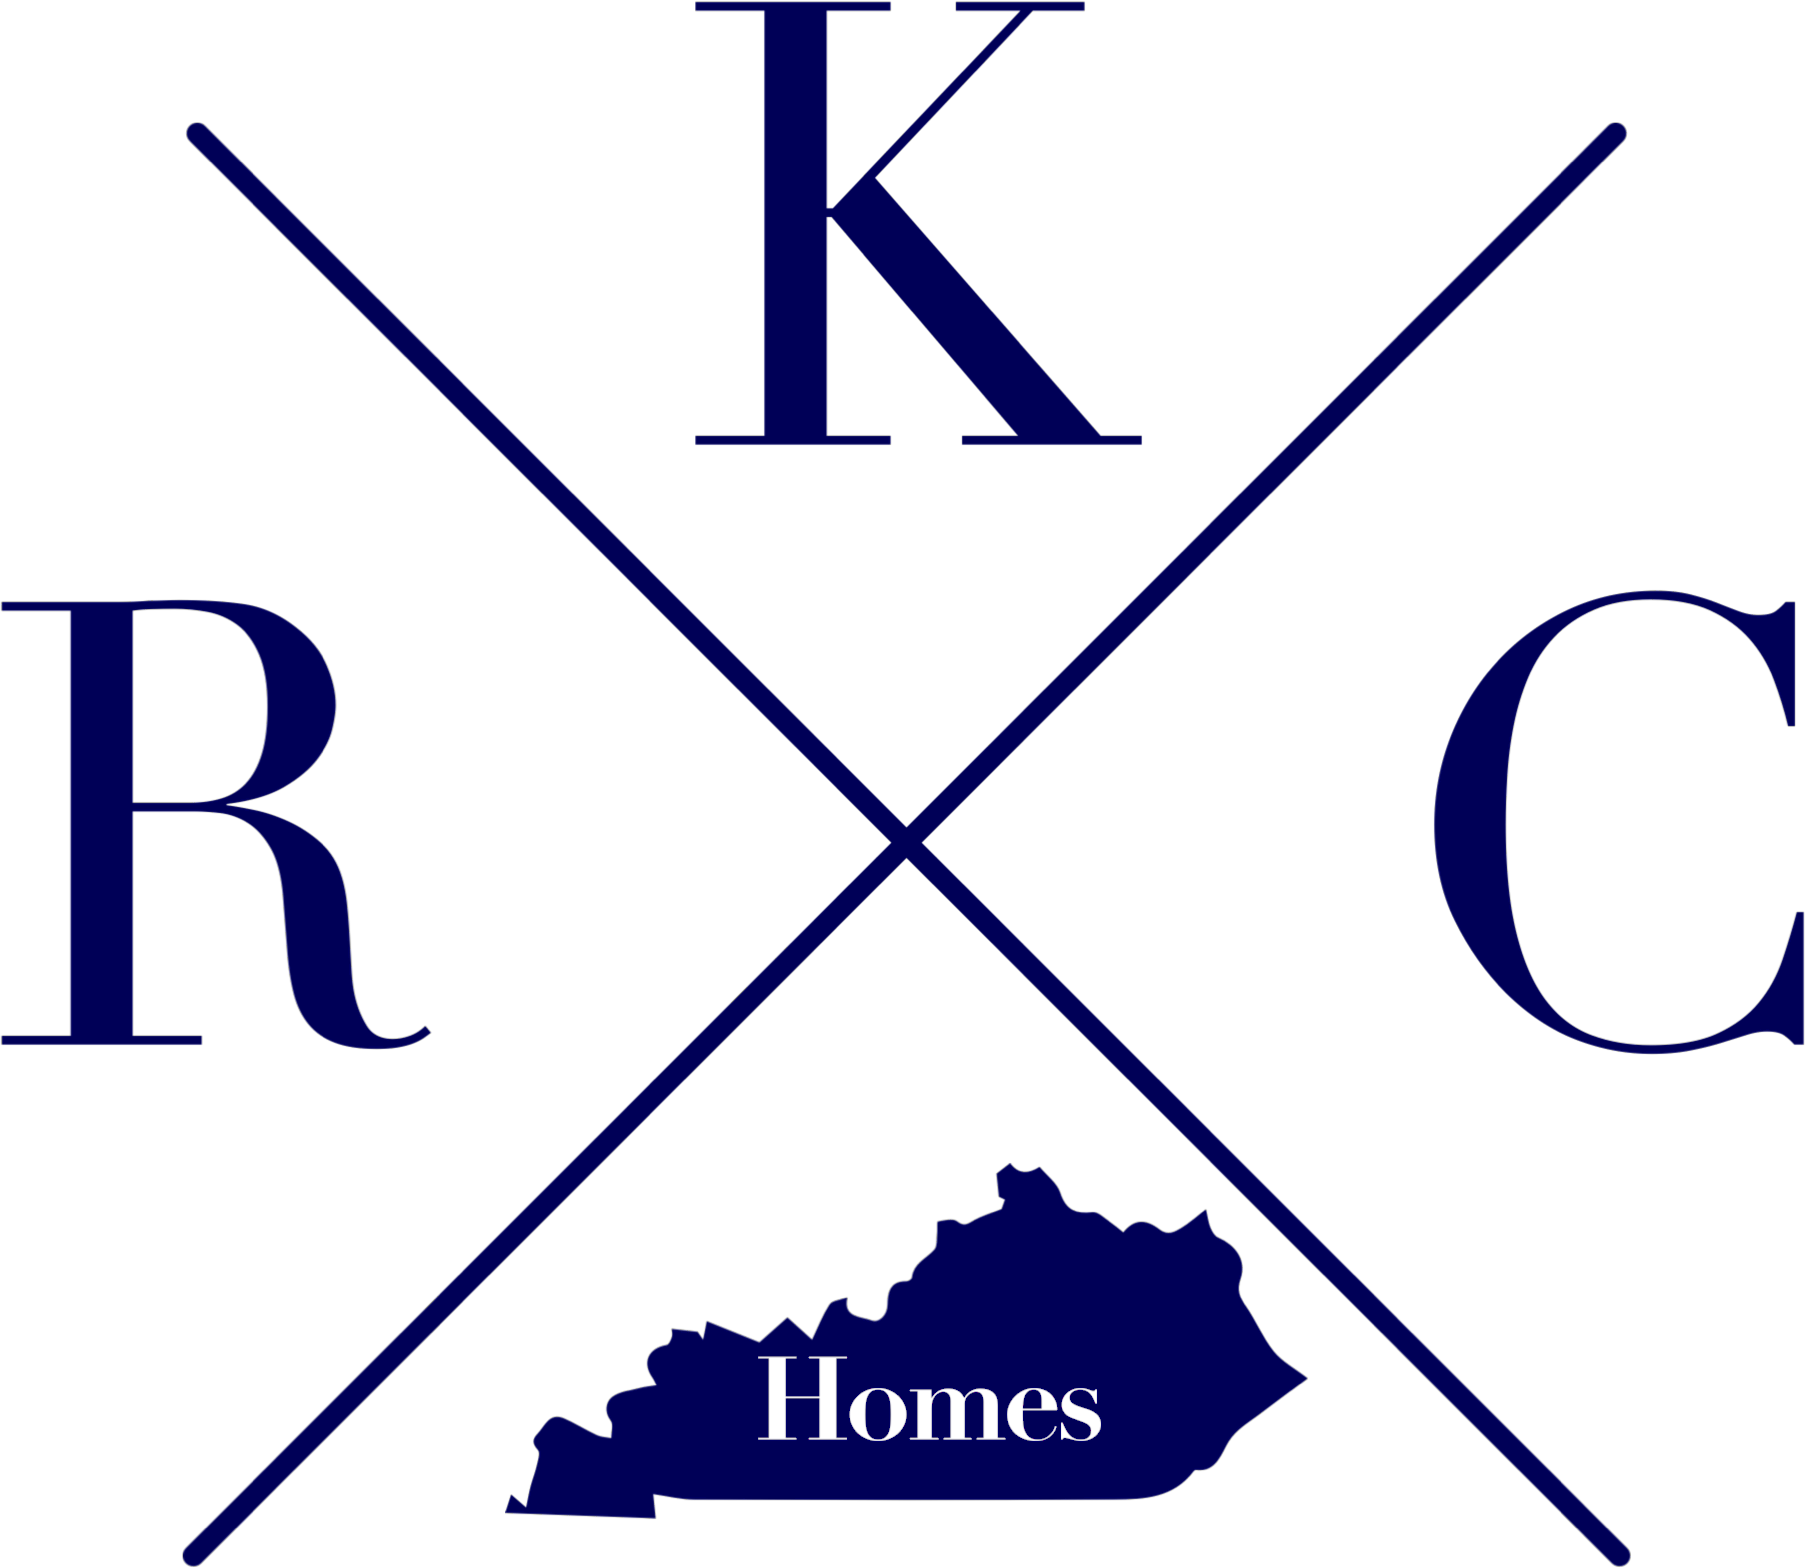 FOR MORE INFORMATION... - Please fill out the form below to contact KRC Homes about starting your own custom home.